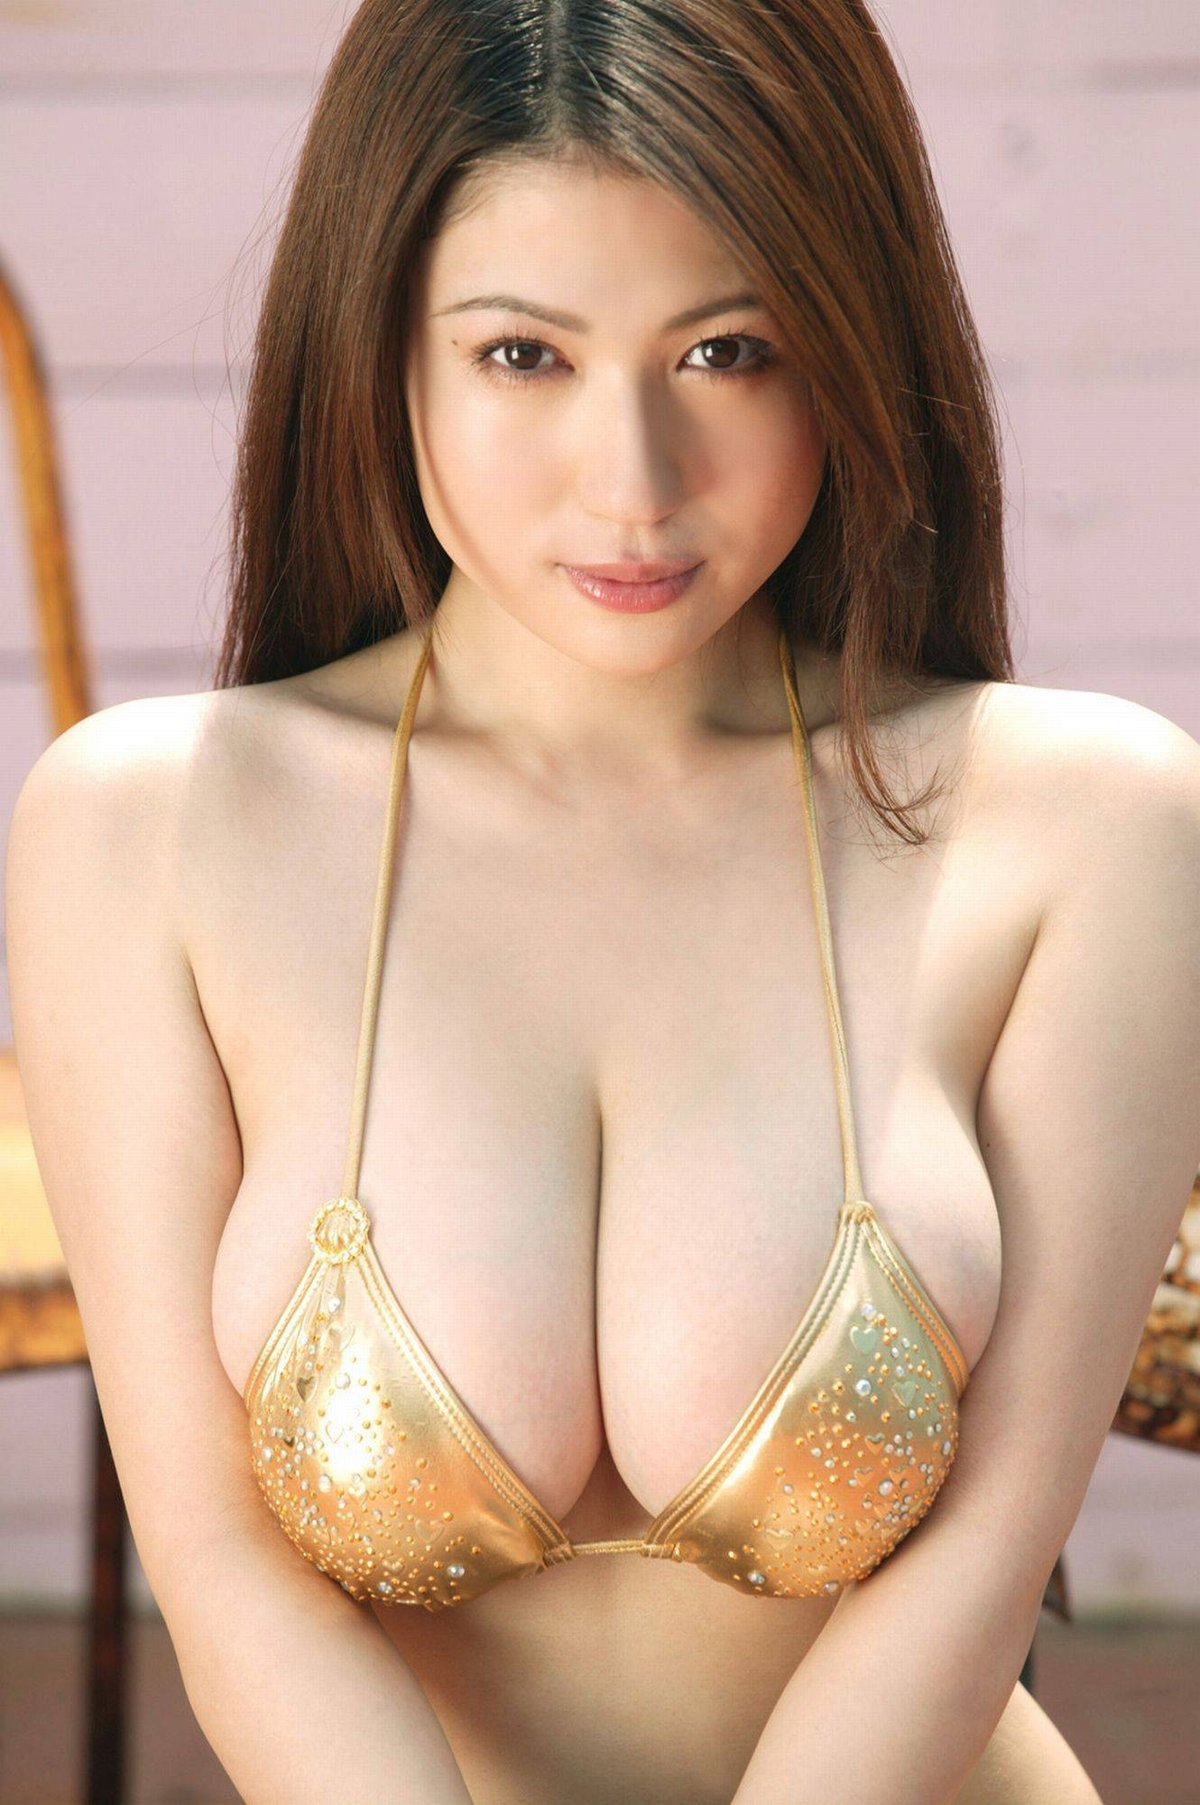 Bare asian breasts — photo 11